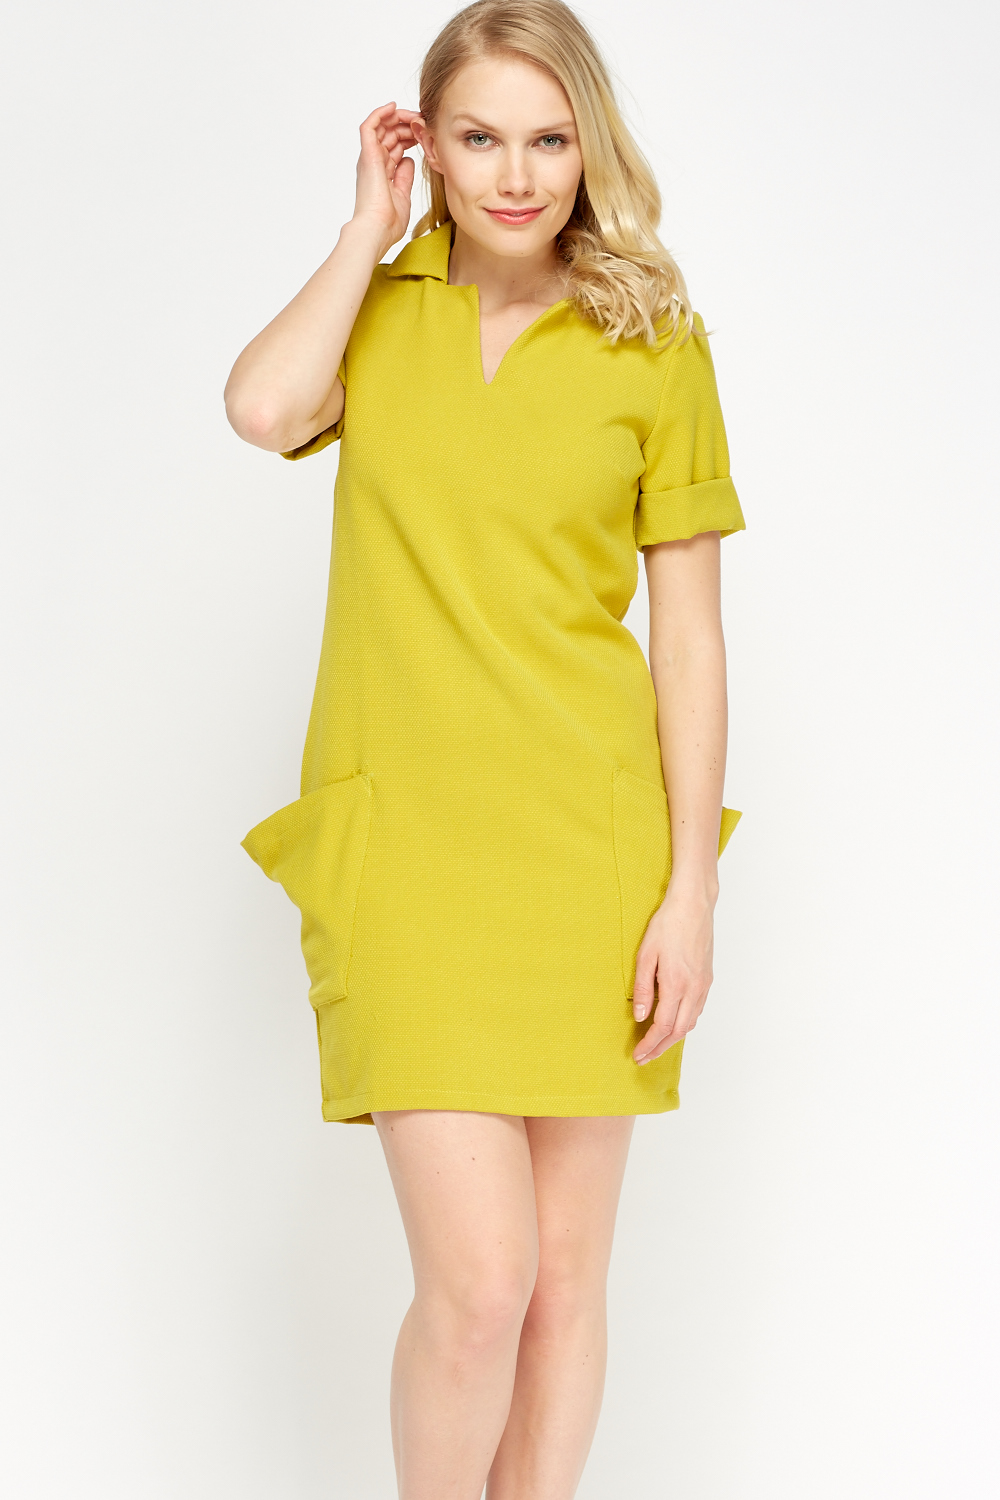 Pocket side t shirt dress just 5 for Dress shirt no pocket